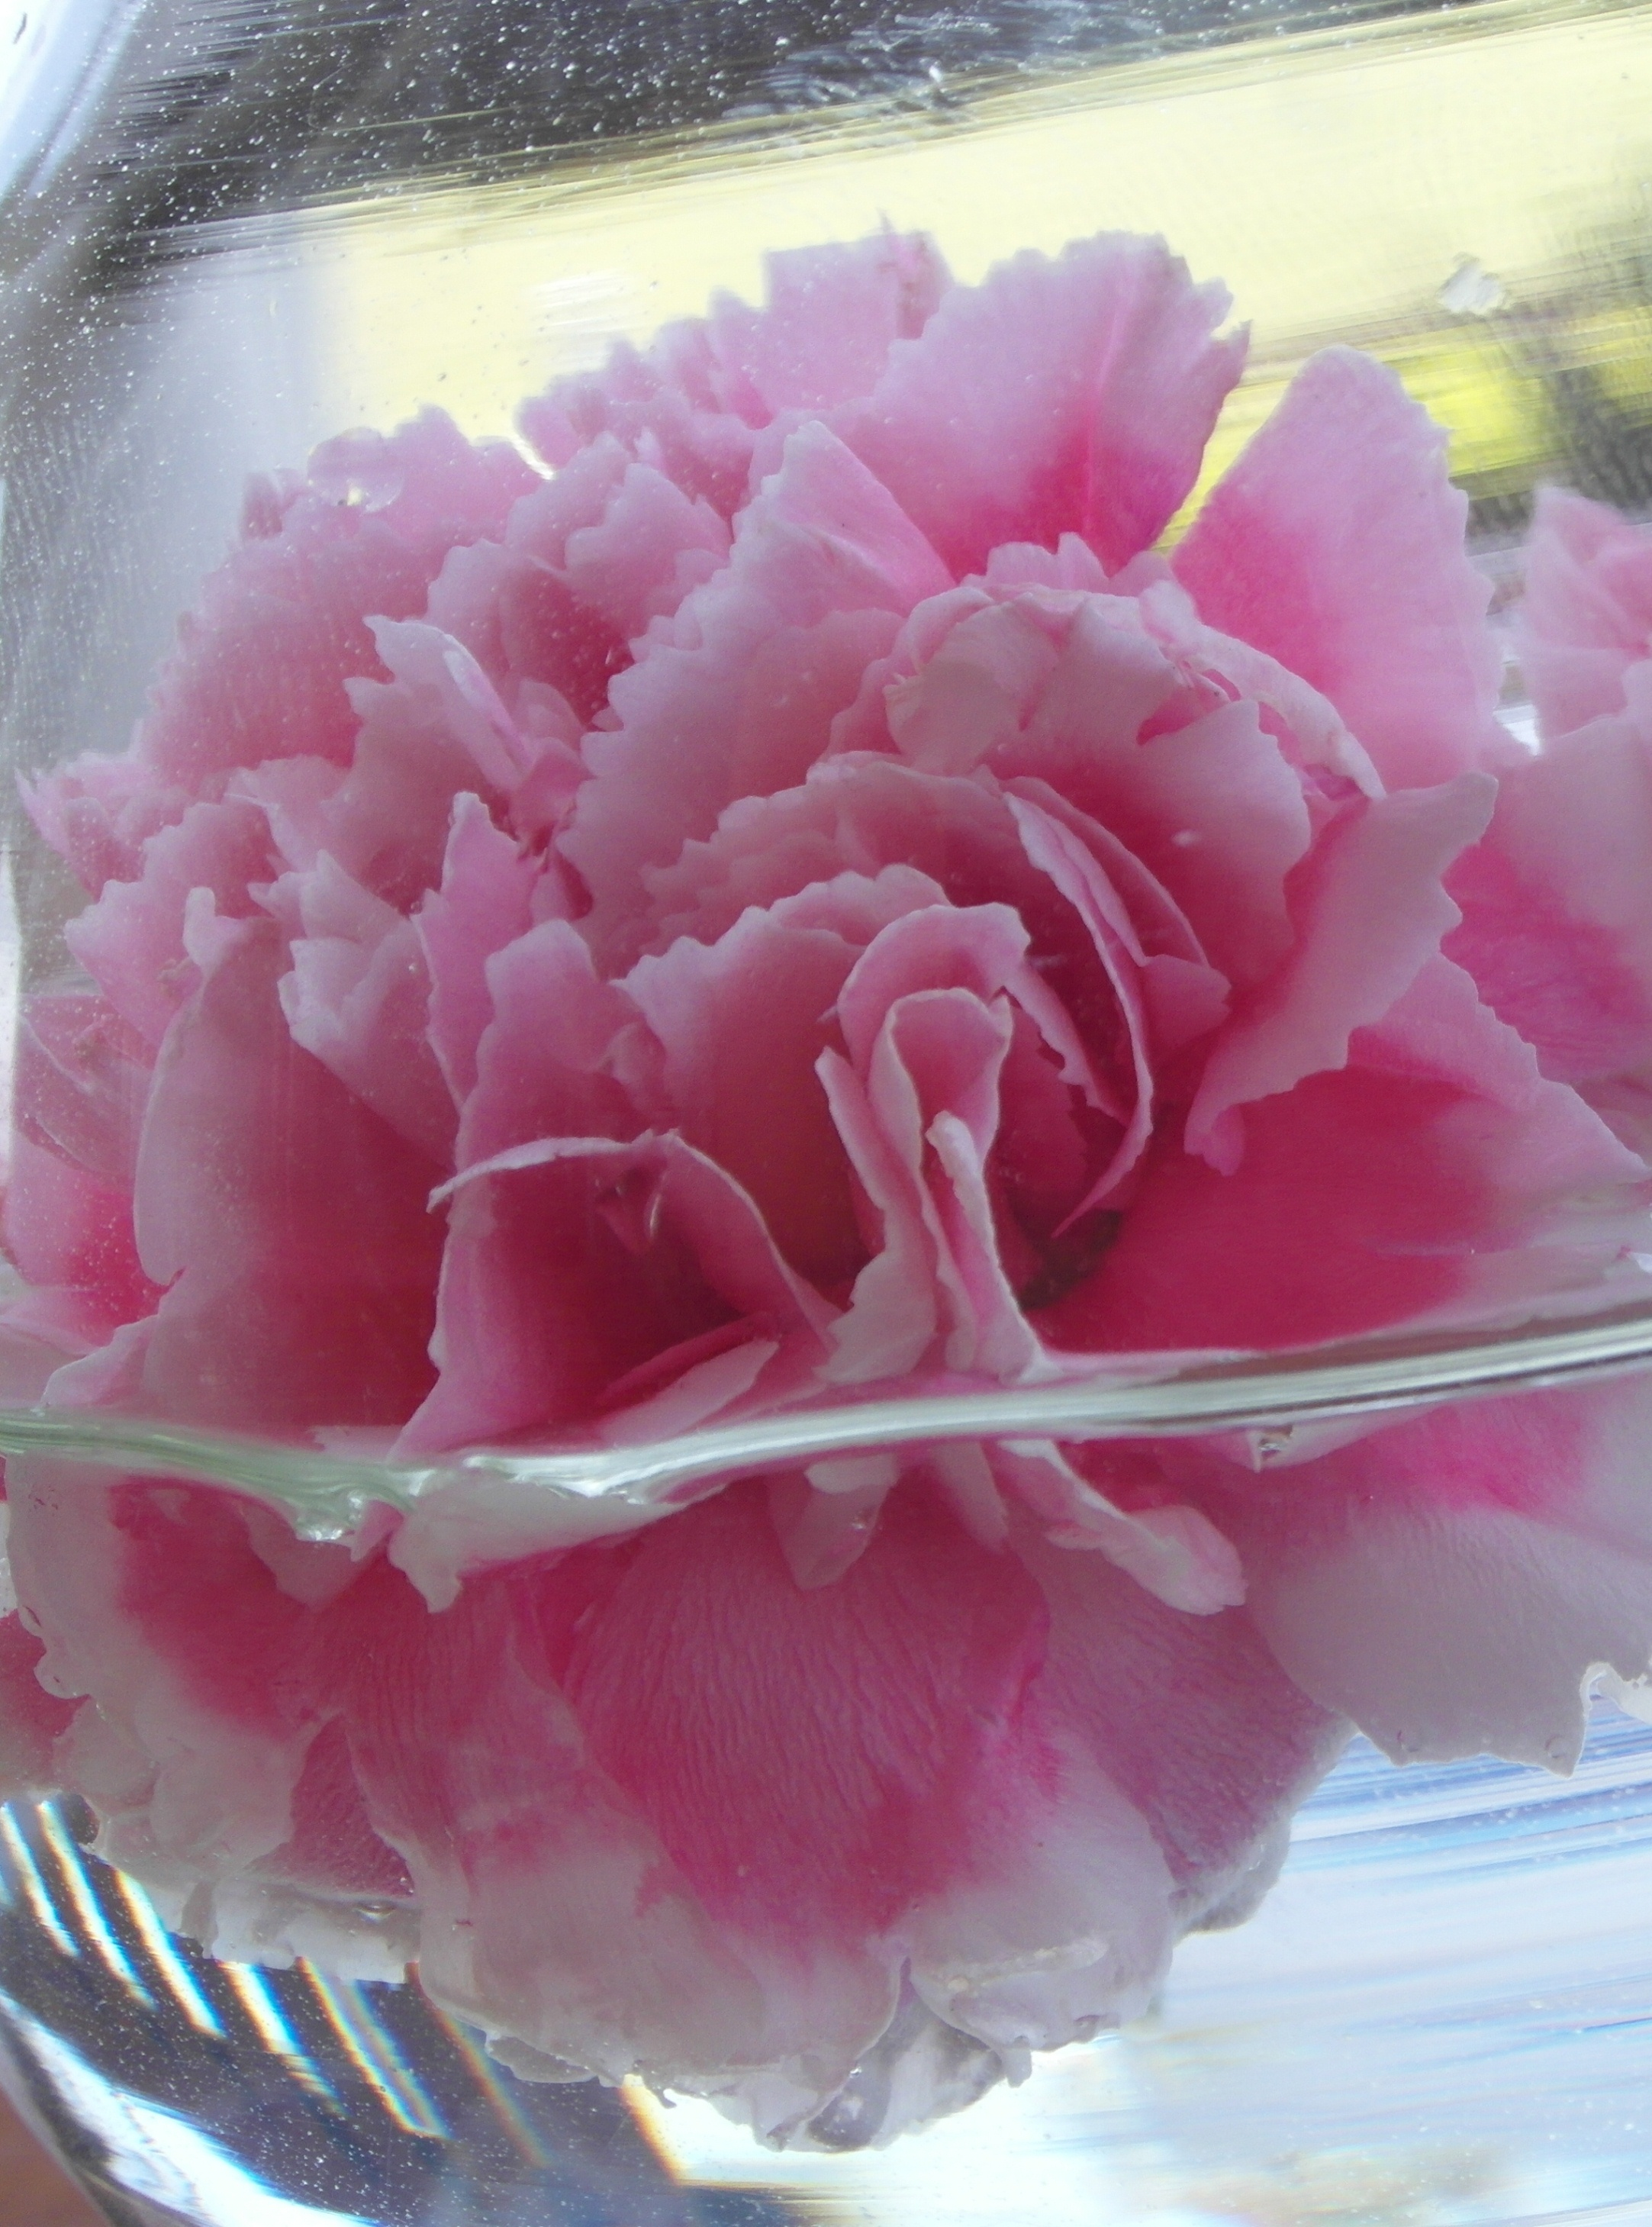 Carnation close-up photo